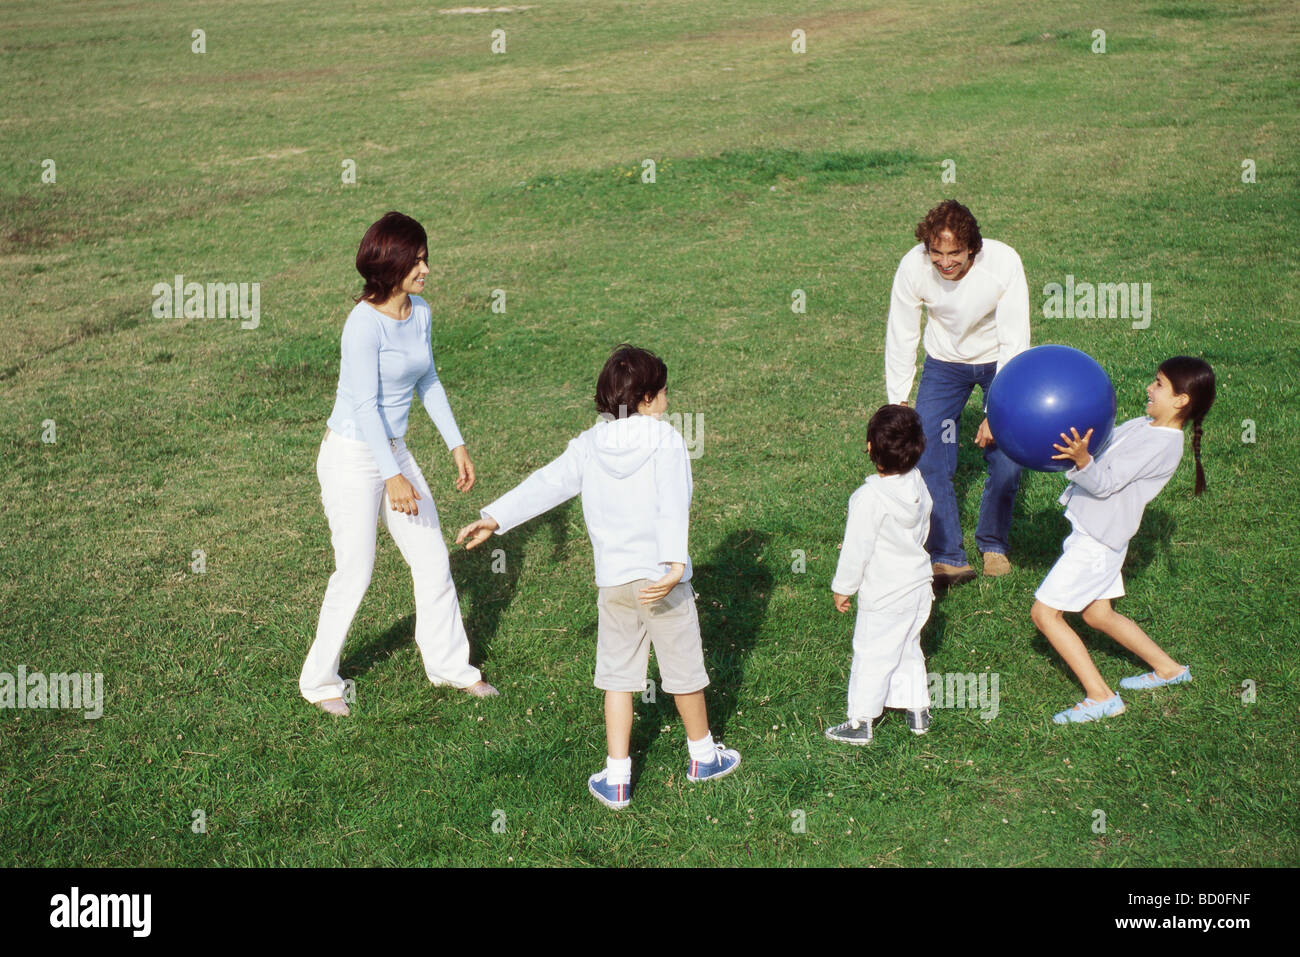 Family playing with ball in grassy field Stock Photo